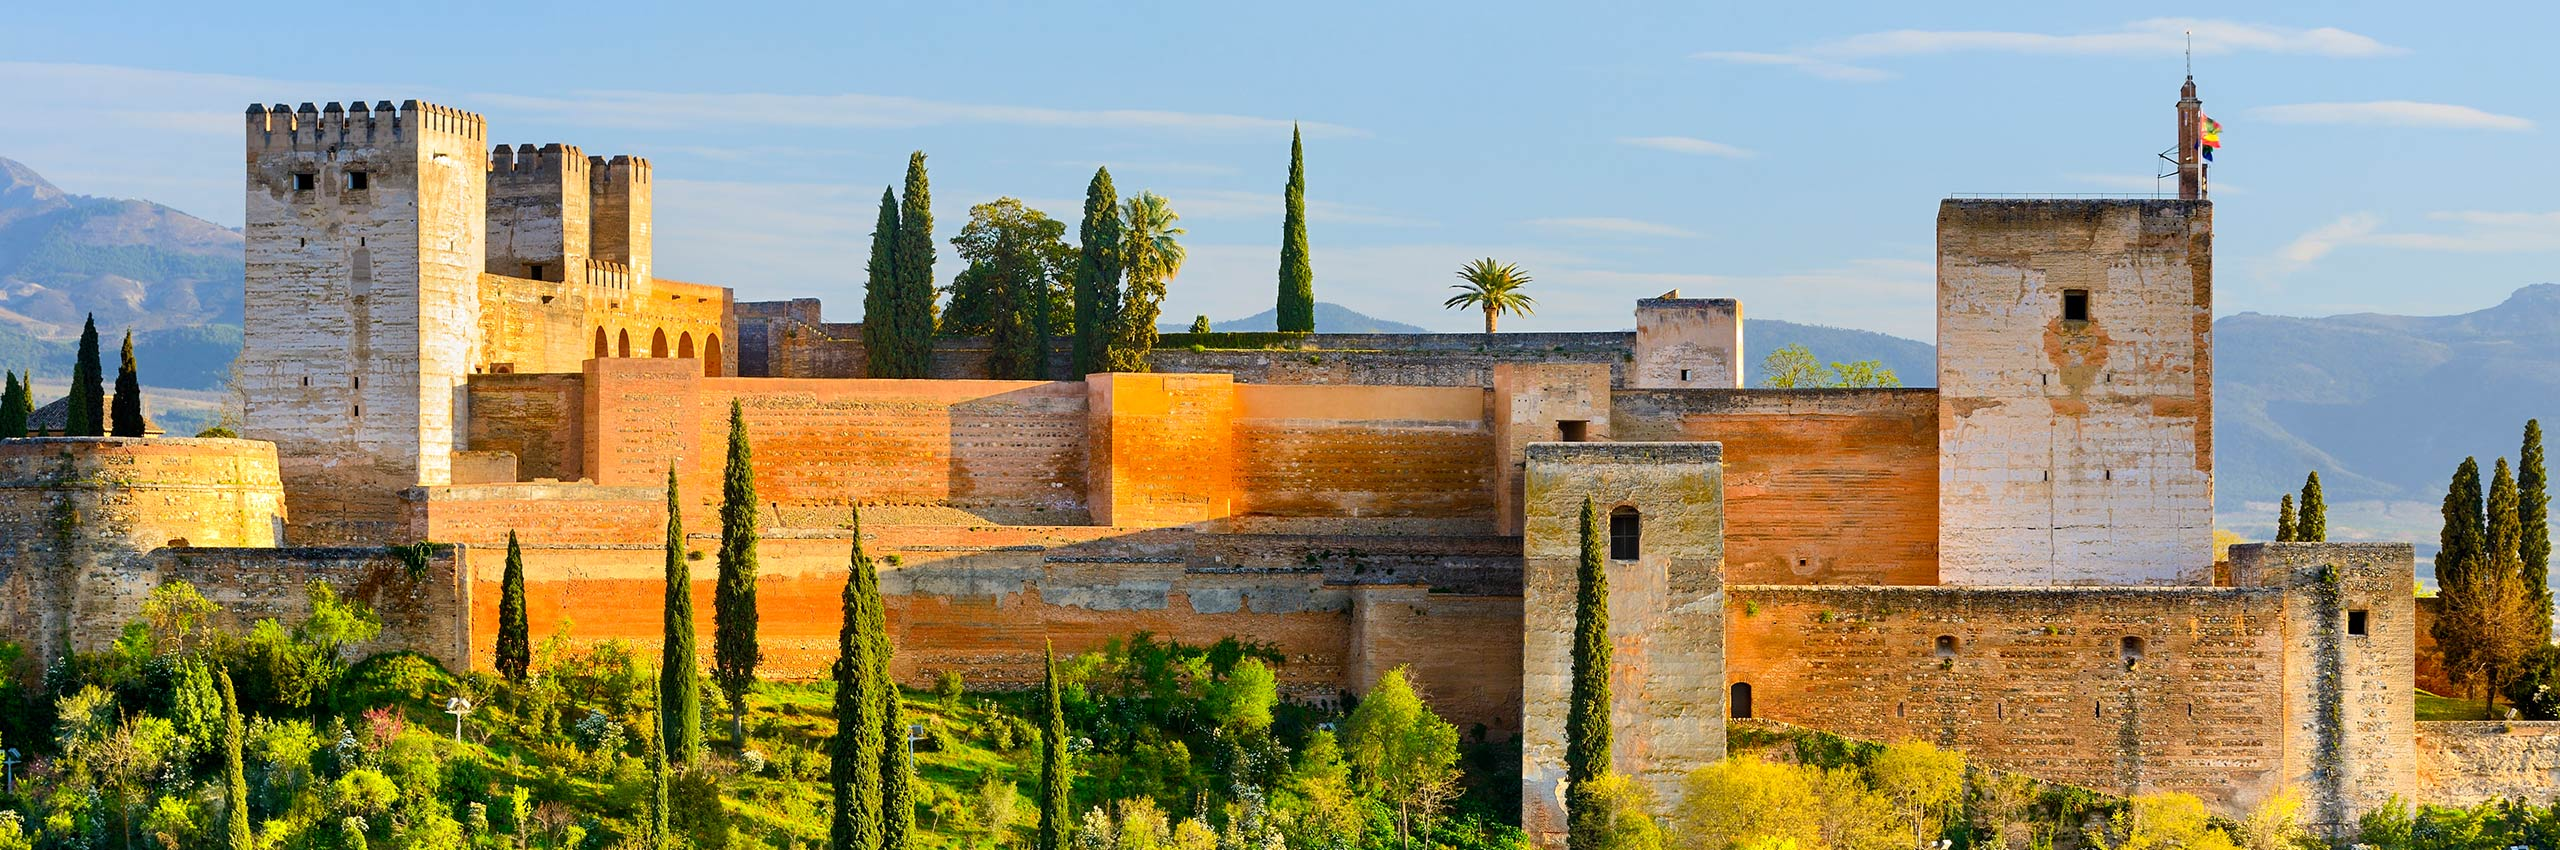 SIM-500847 | Spain/Andalusia, Granada, Alhambra Palace | © Francesco Carovillano/4Corners